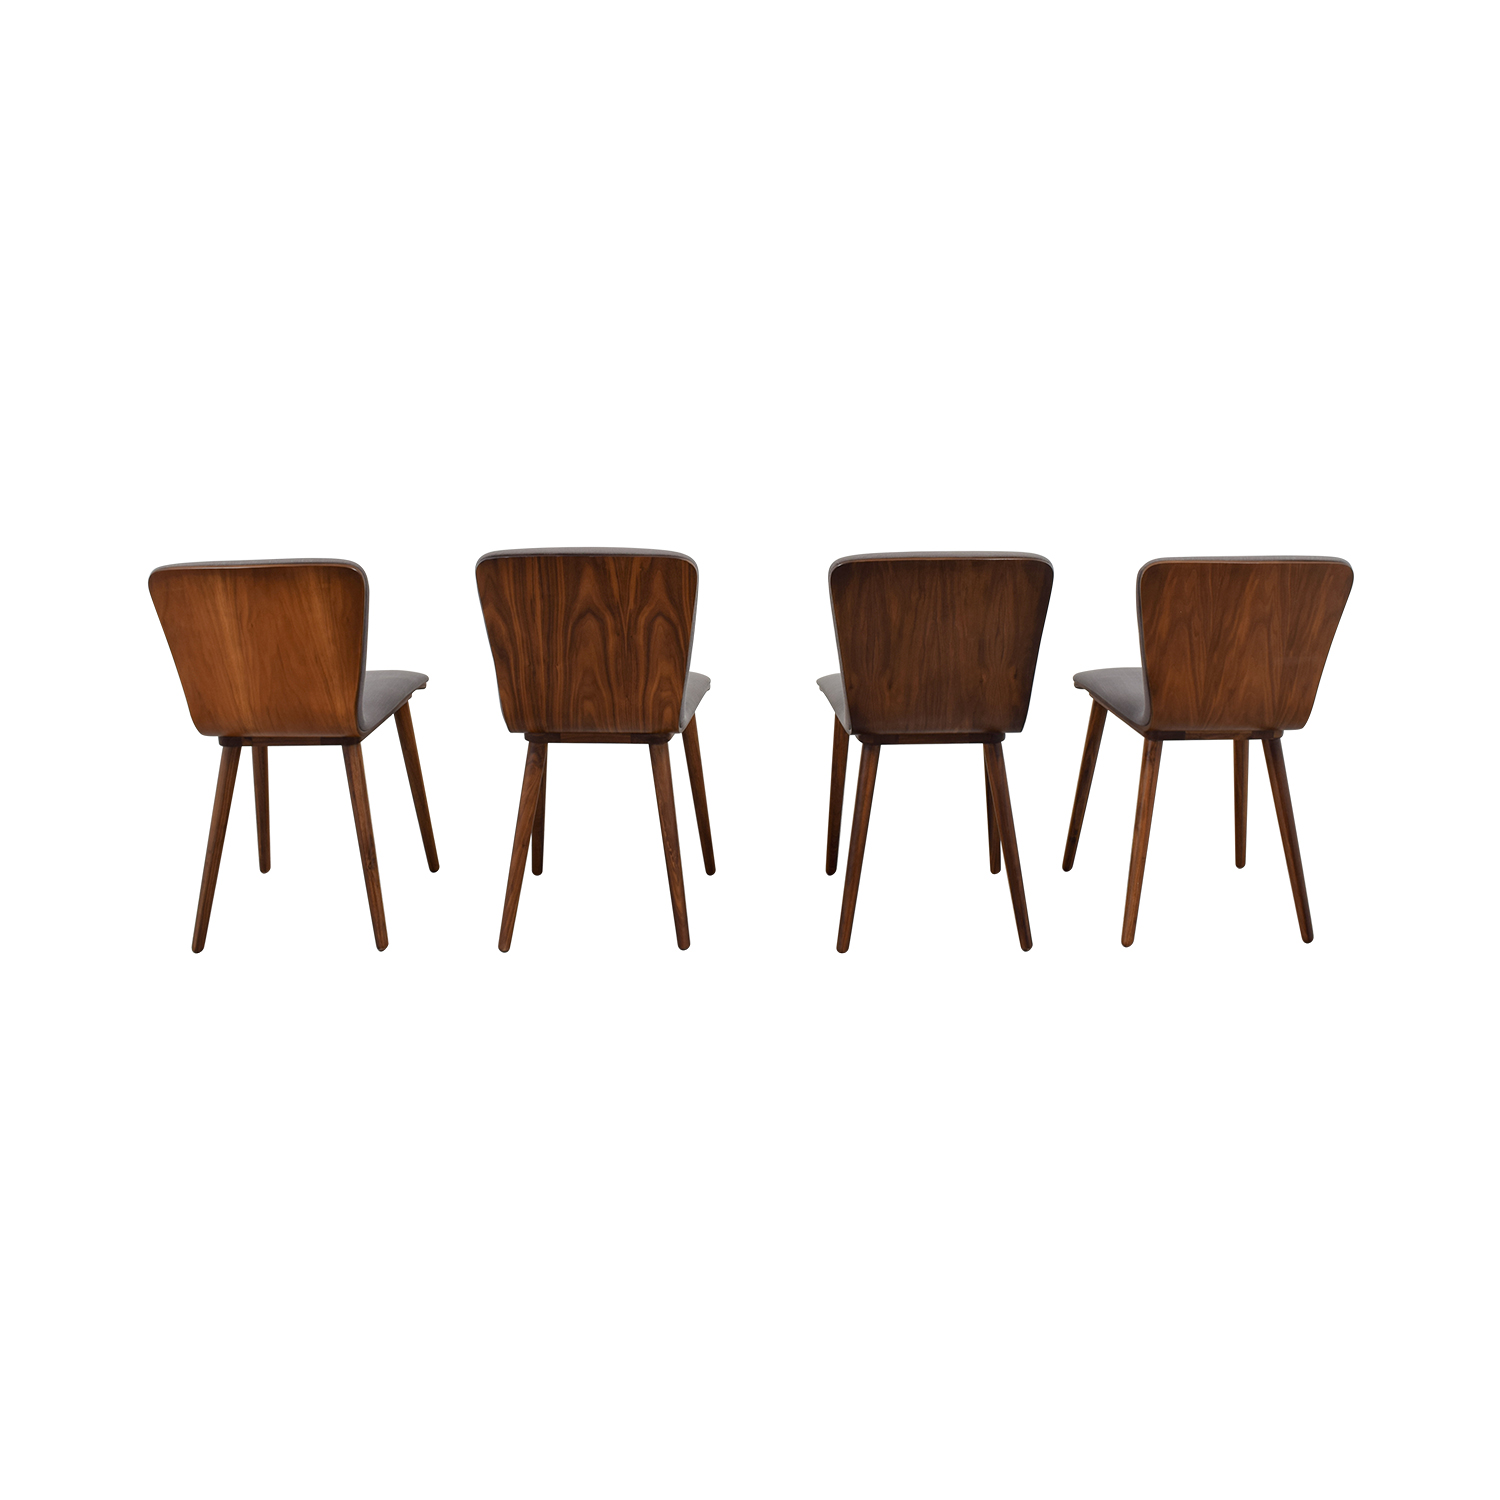 shop Article Article Sede Thunder Gray Walnut Dining Chairs online